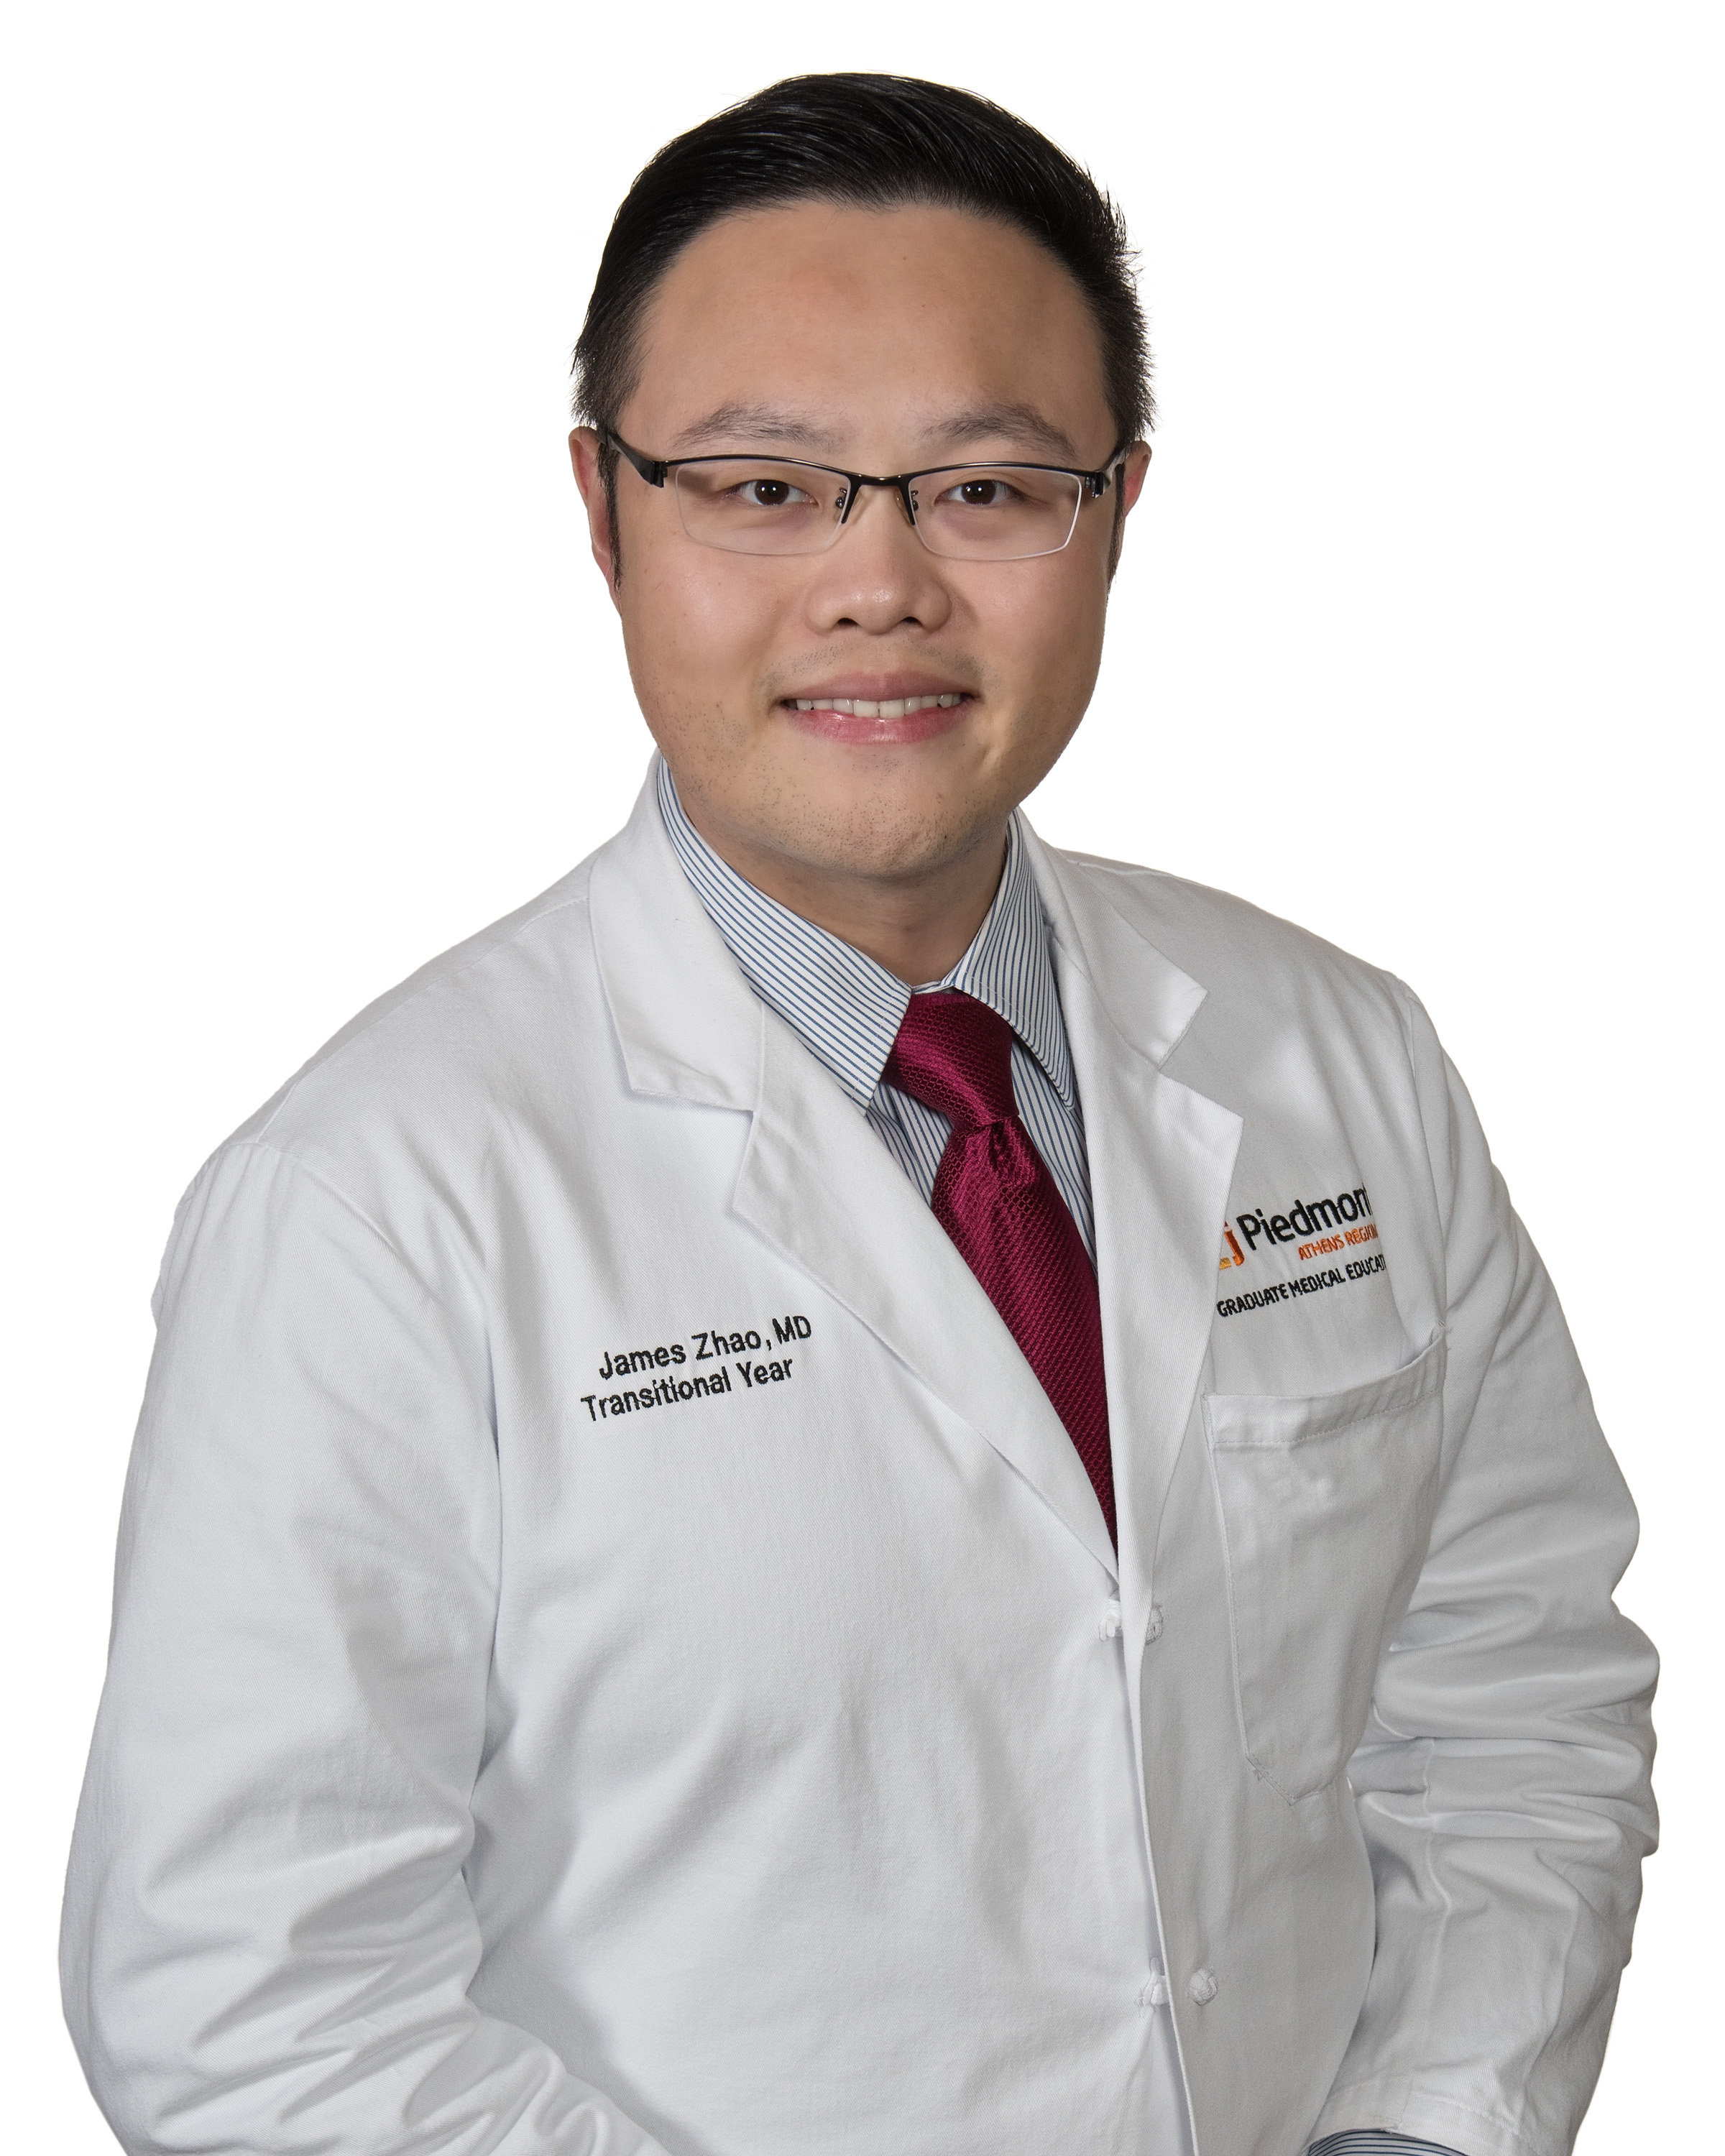 James Zhao, MD